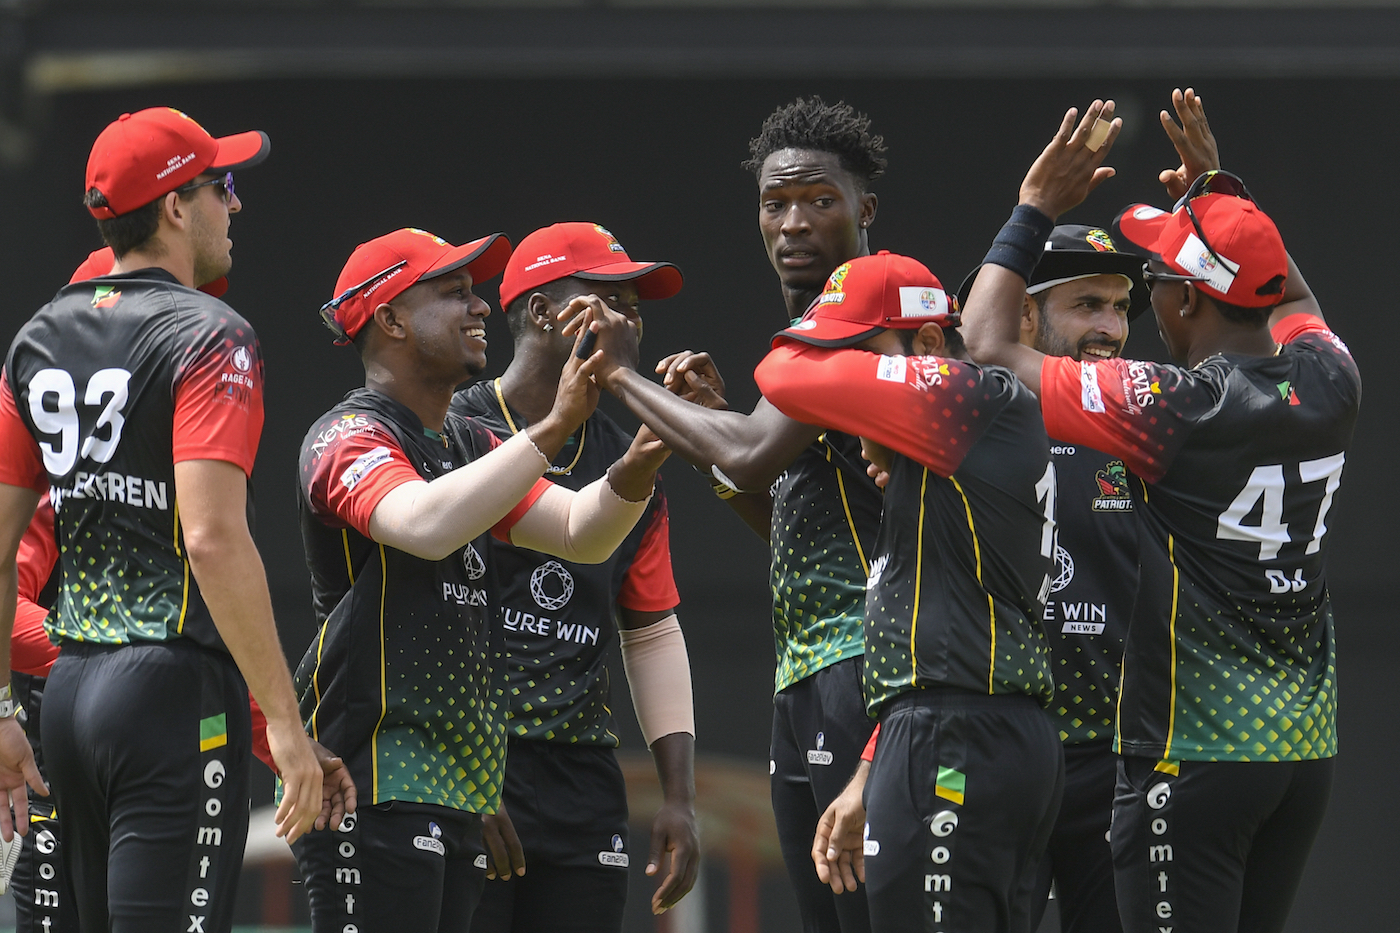 St Kitts and Nevis Patriots vs Jamaica Tallawahs the match 21 predictions in Caribbean Premier League: CPL 2021